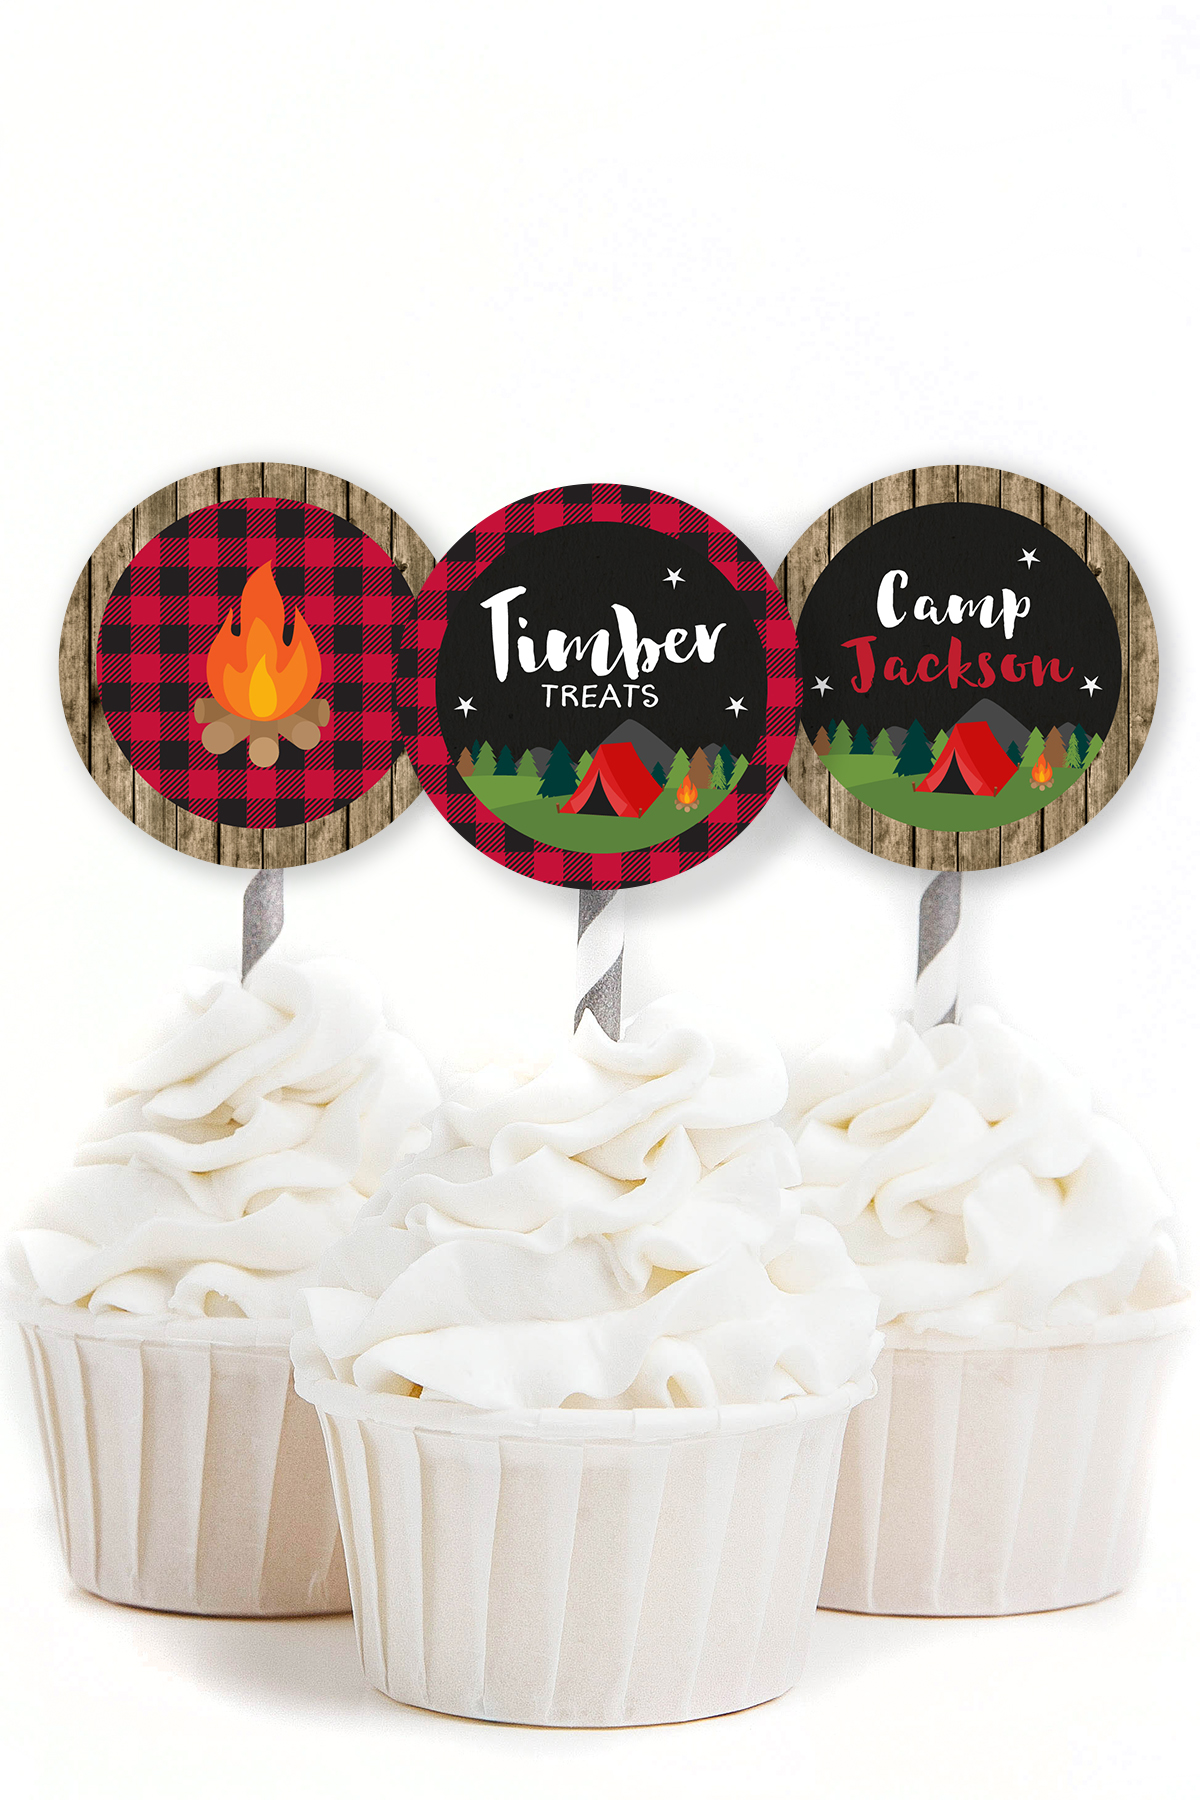 Camping birthday cupcake toppers